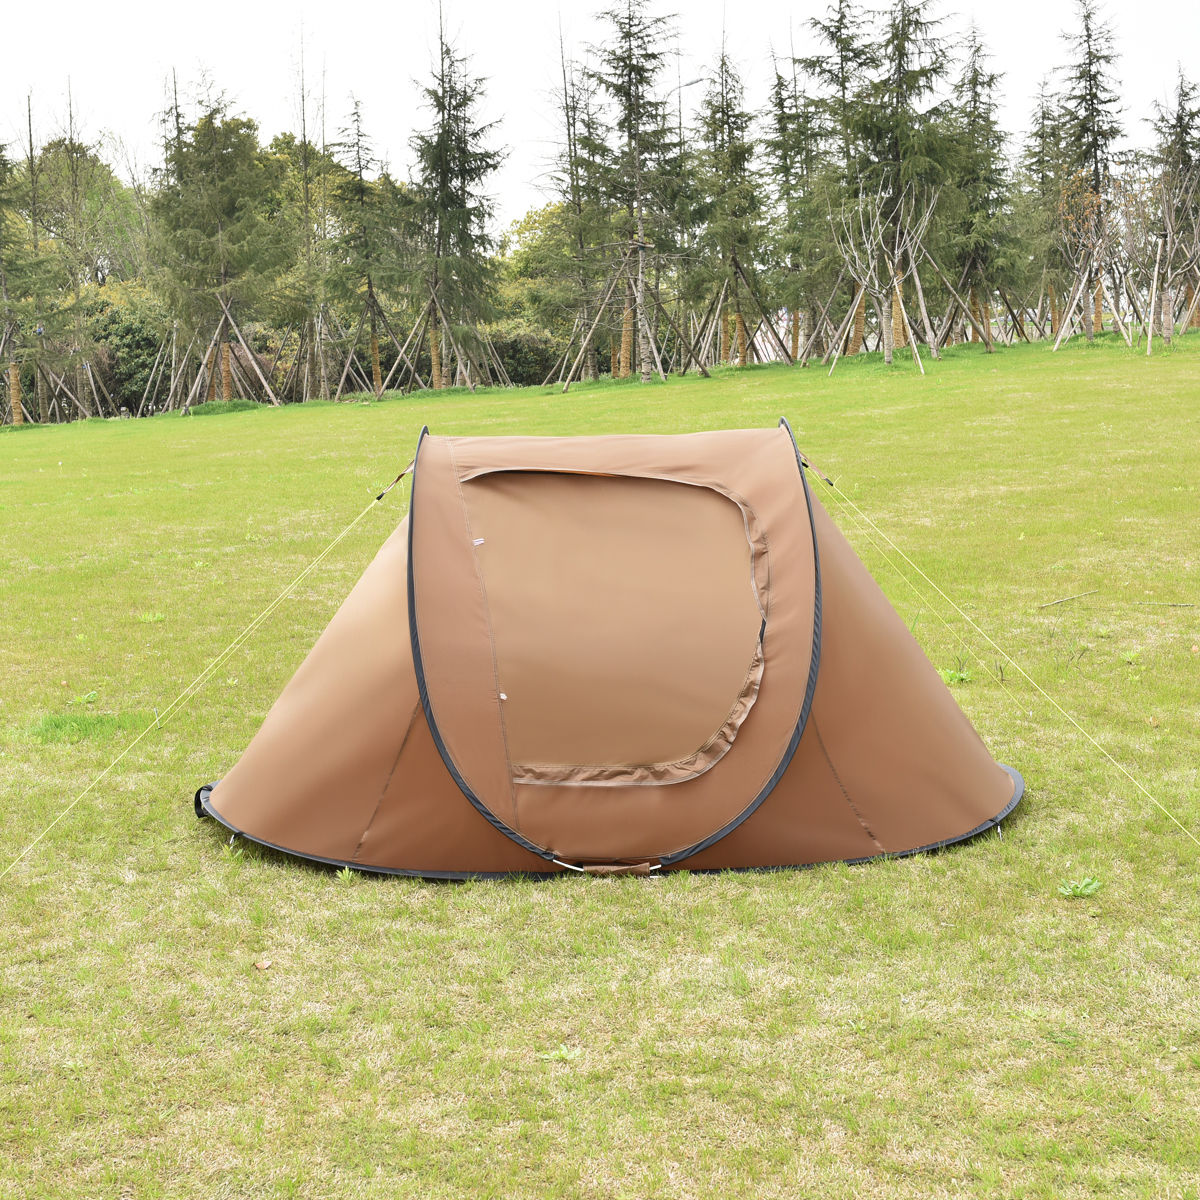 US 2-3 Person Waterproof Camping Tent Auto Pop Up Quick Shelter Outdoor Hiking